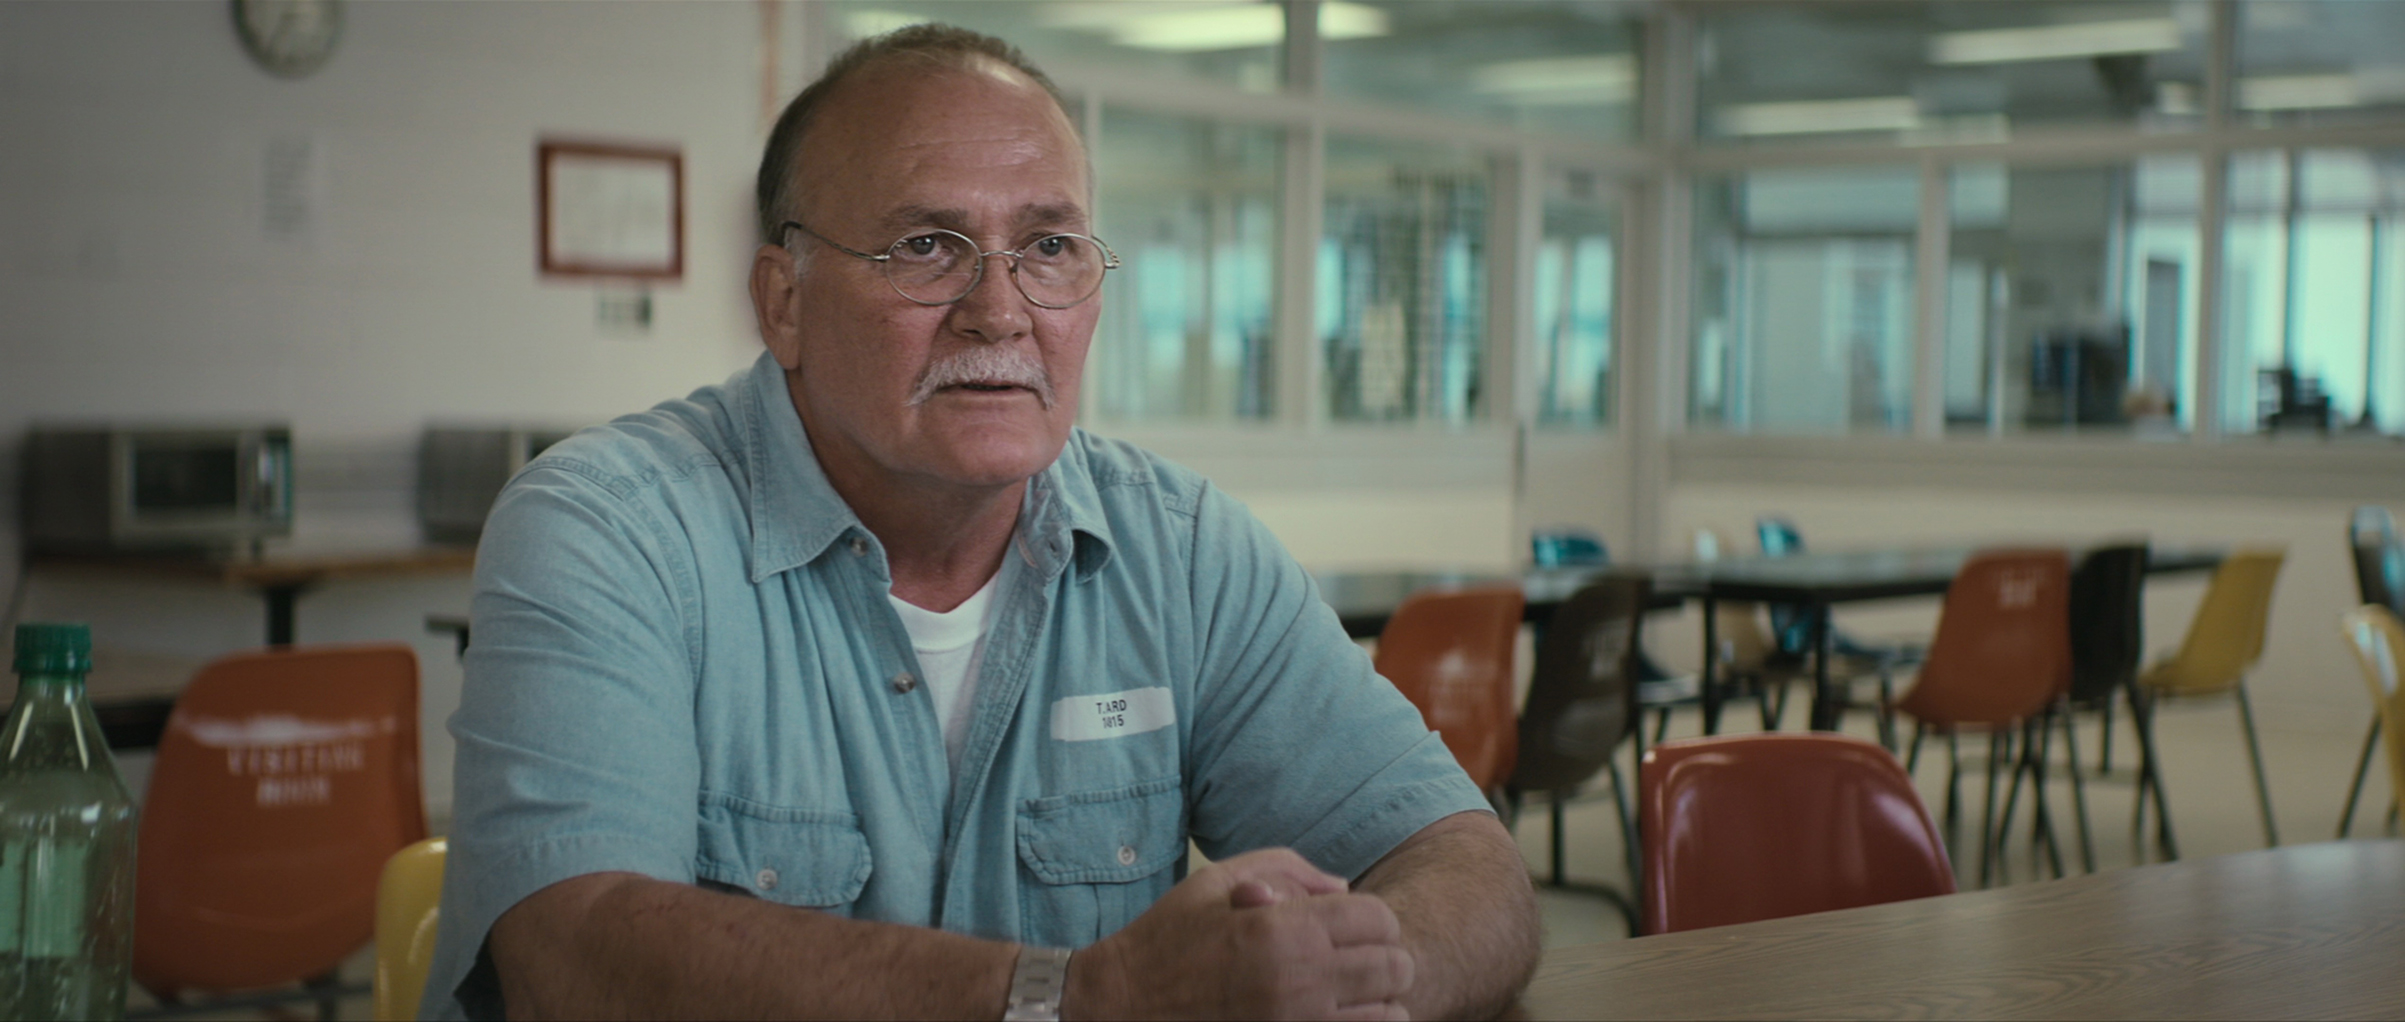 Ward has been fighting for his freedom since 1985